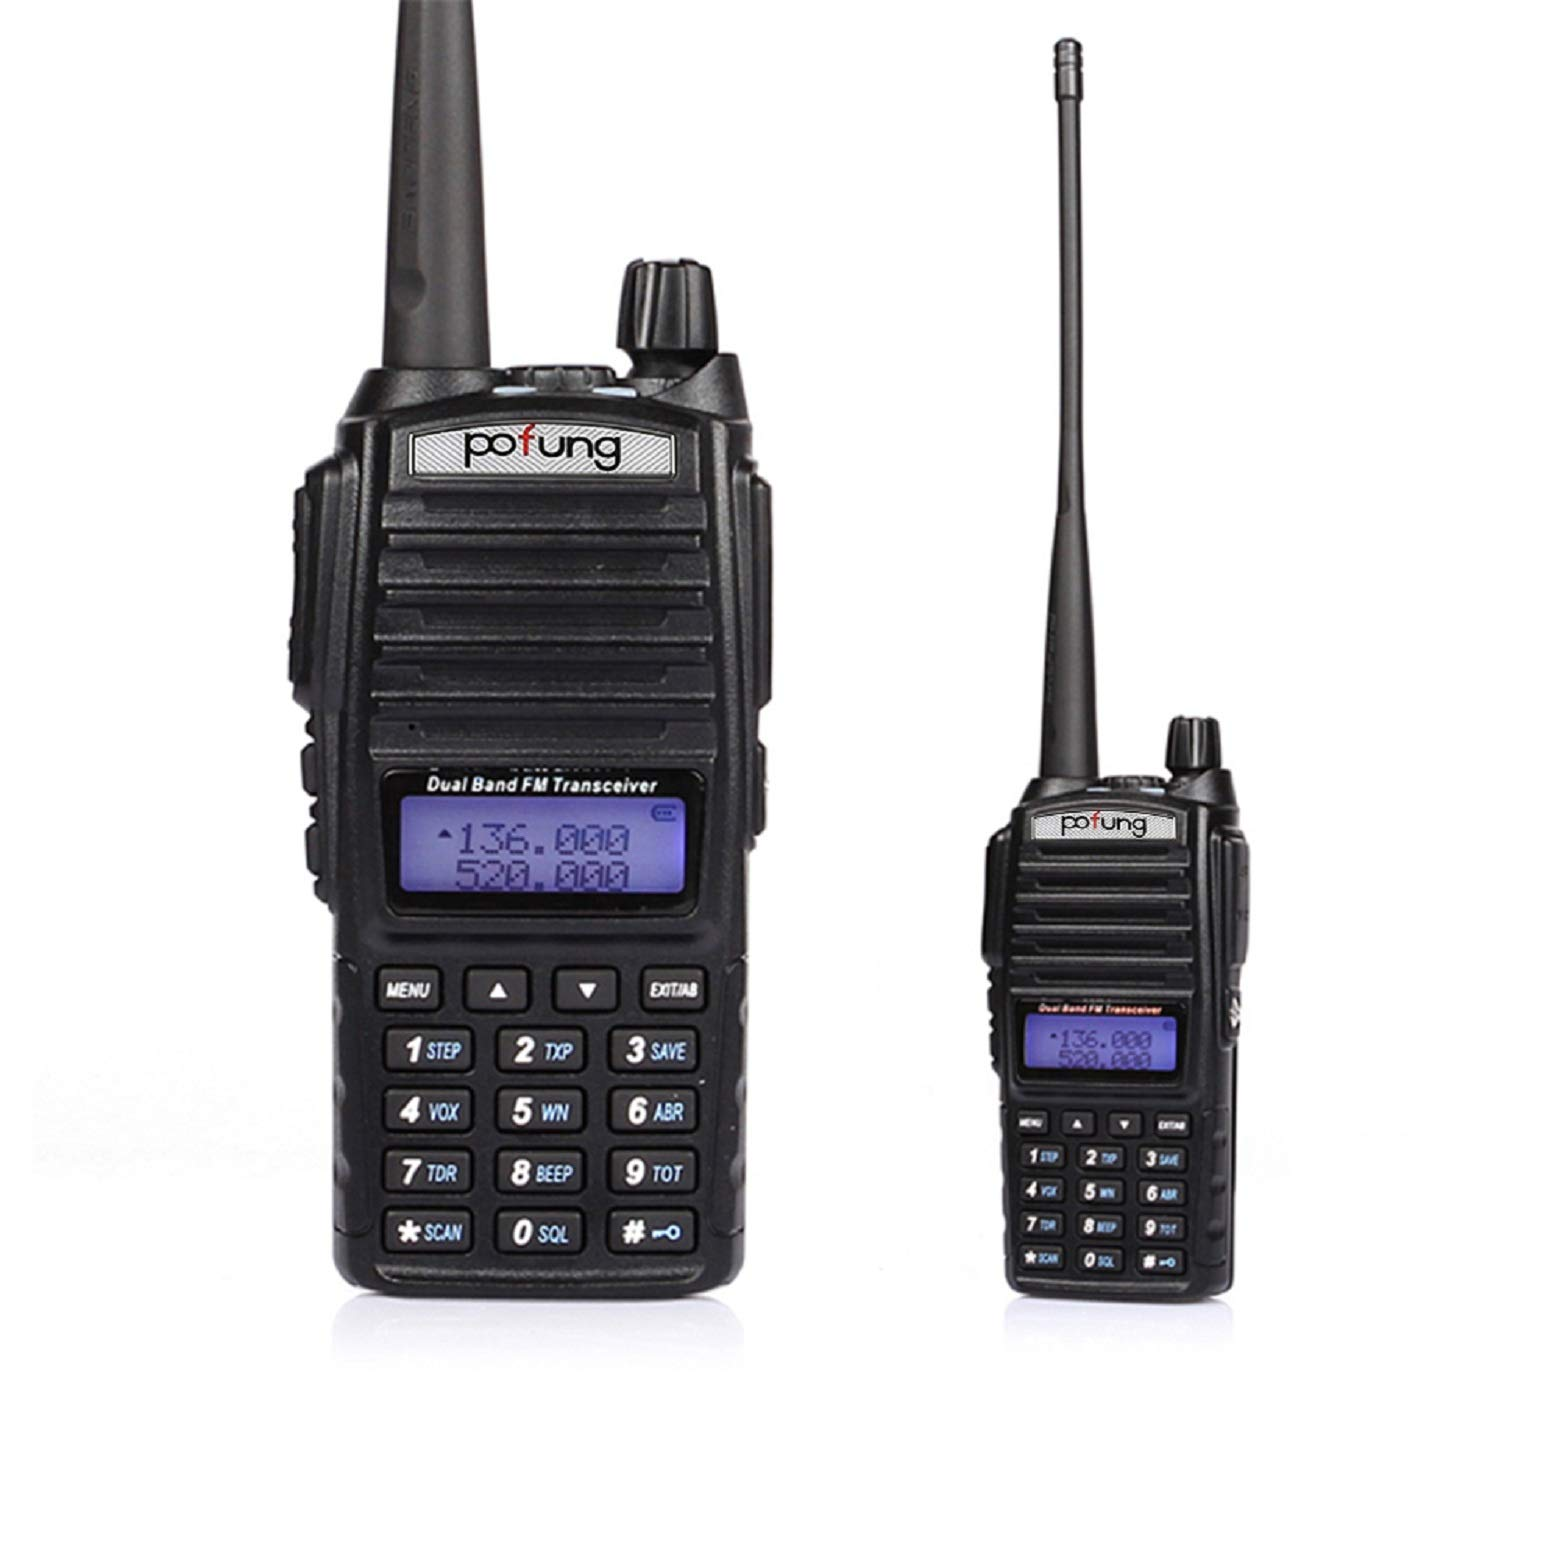 BaoFeng Pofung UV-82 Dual-Band 136-174/400-520 MHz FM Ham Two-Way Radio, Transceiver - 2-Pack by BAOFENG